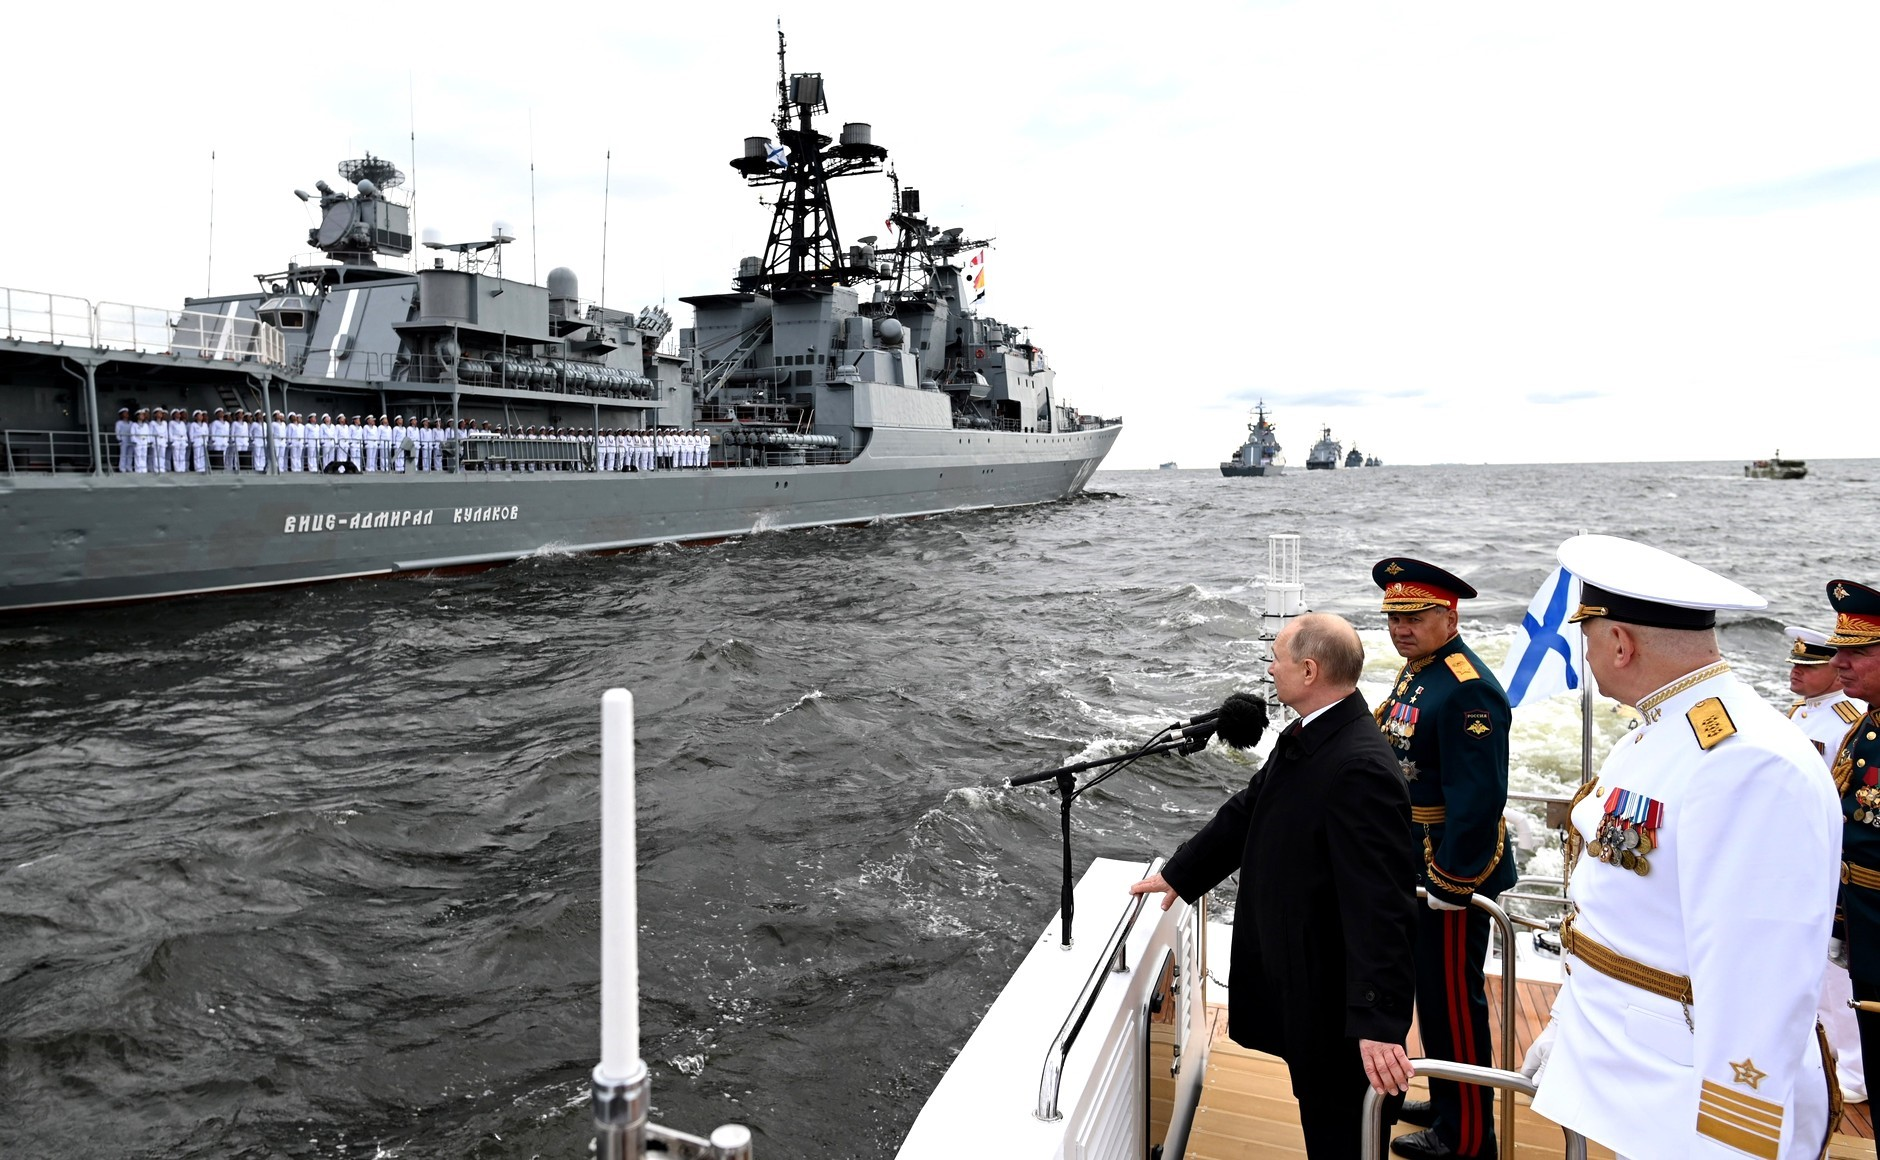 Putin Warns Of Russia's Hypersonic Nuclear Weapons At Naval Parade